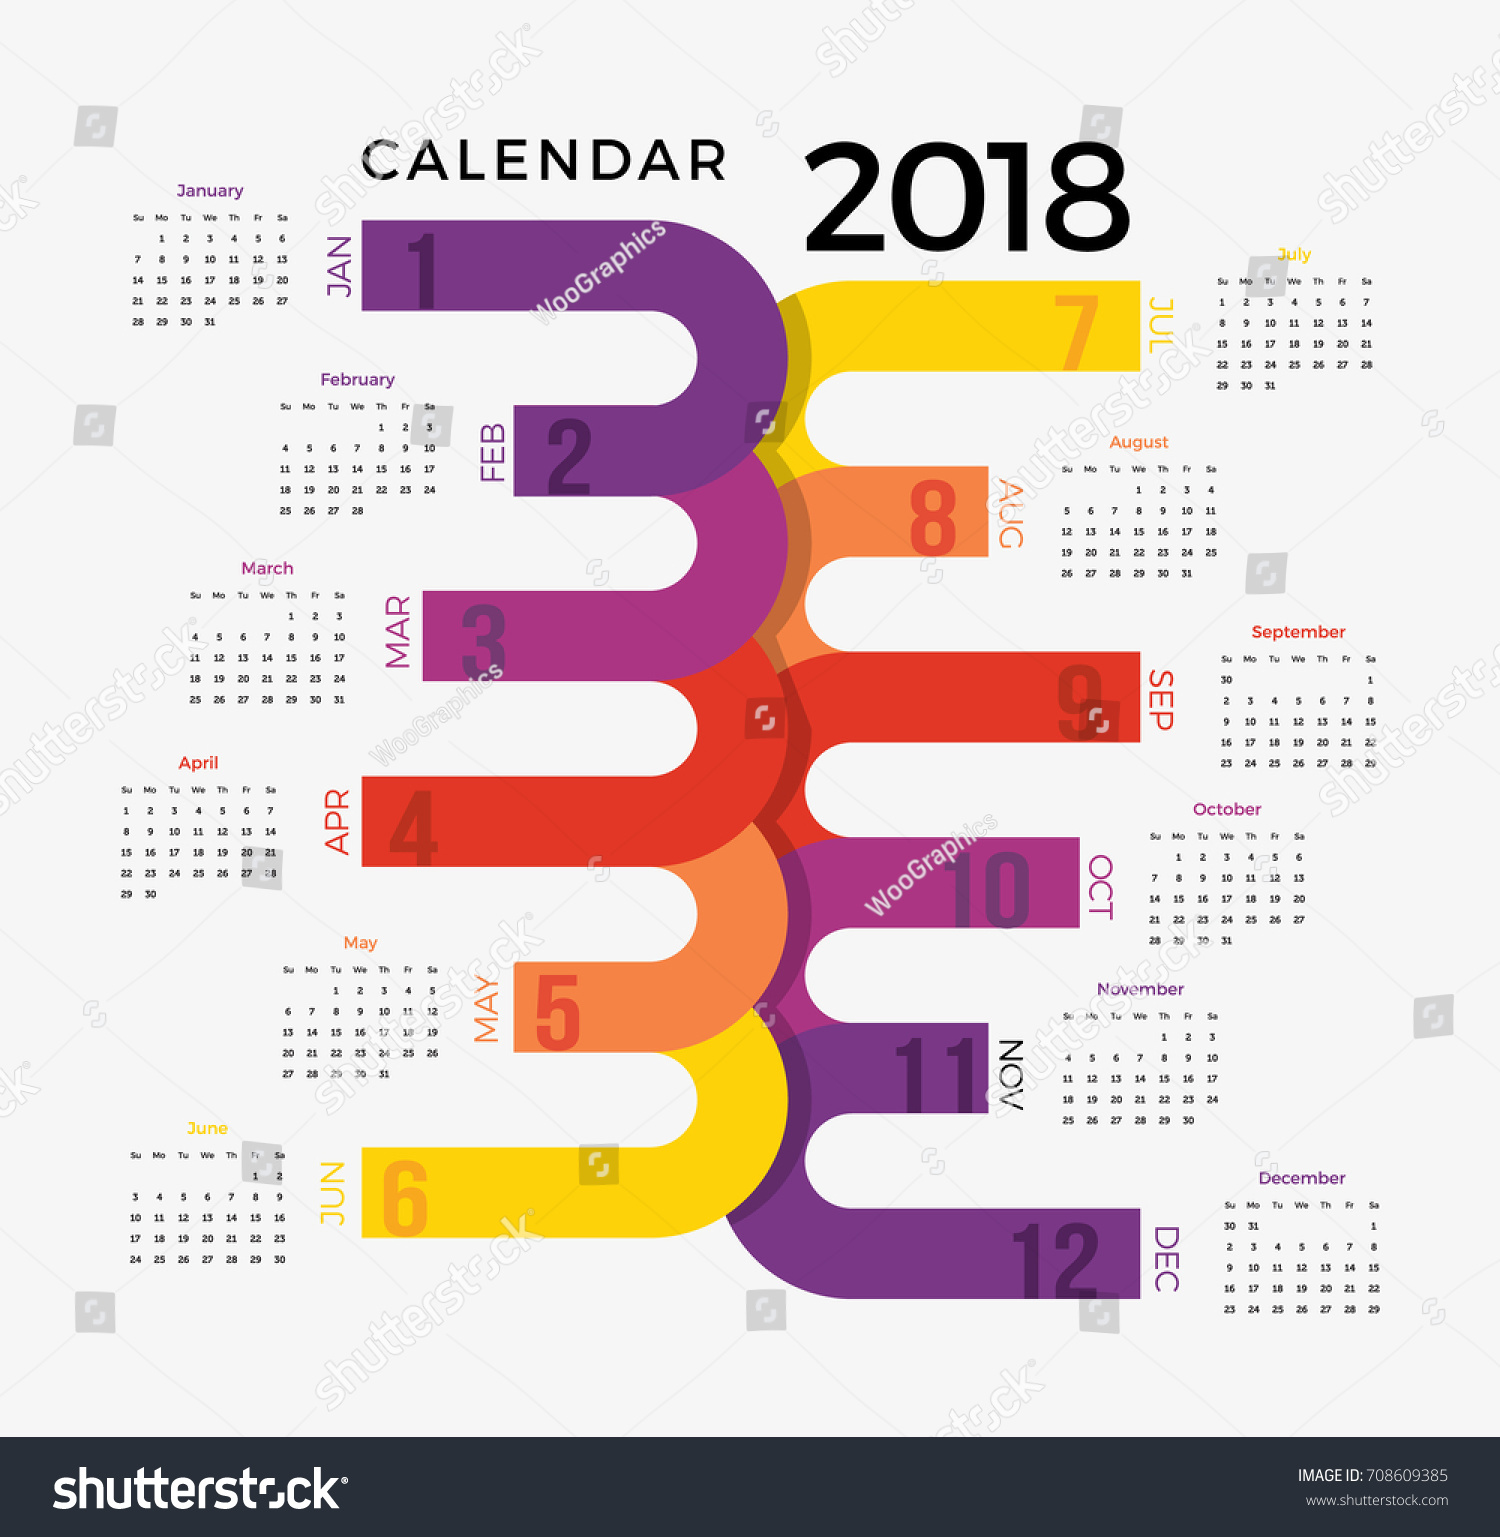 Yearly Calendar Design : Calendar template colorful illustrative happy stock